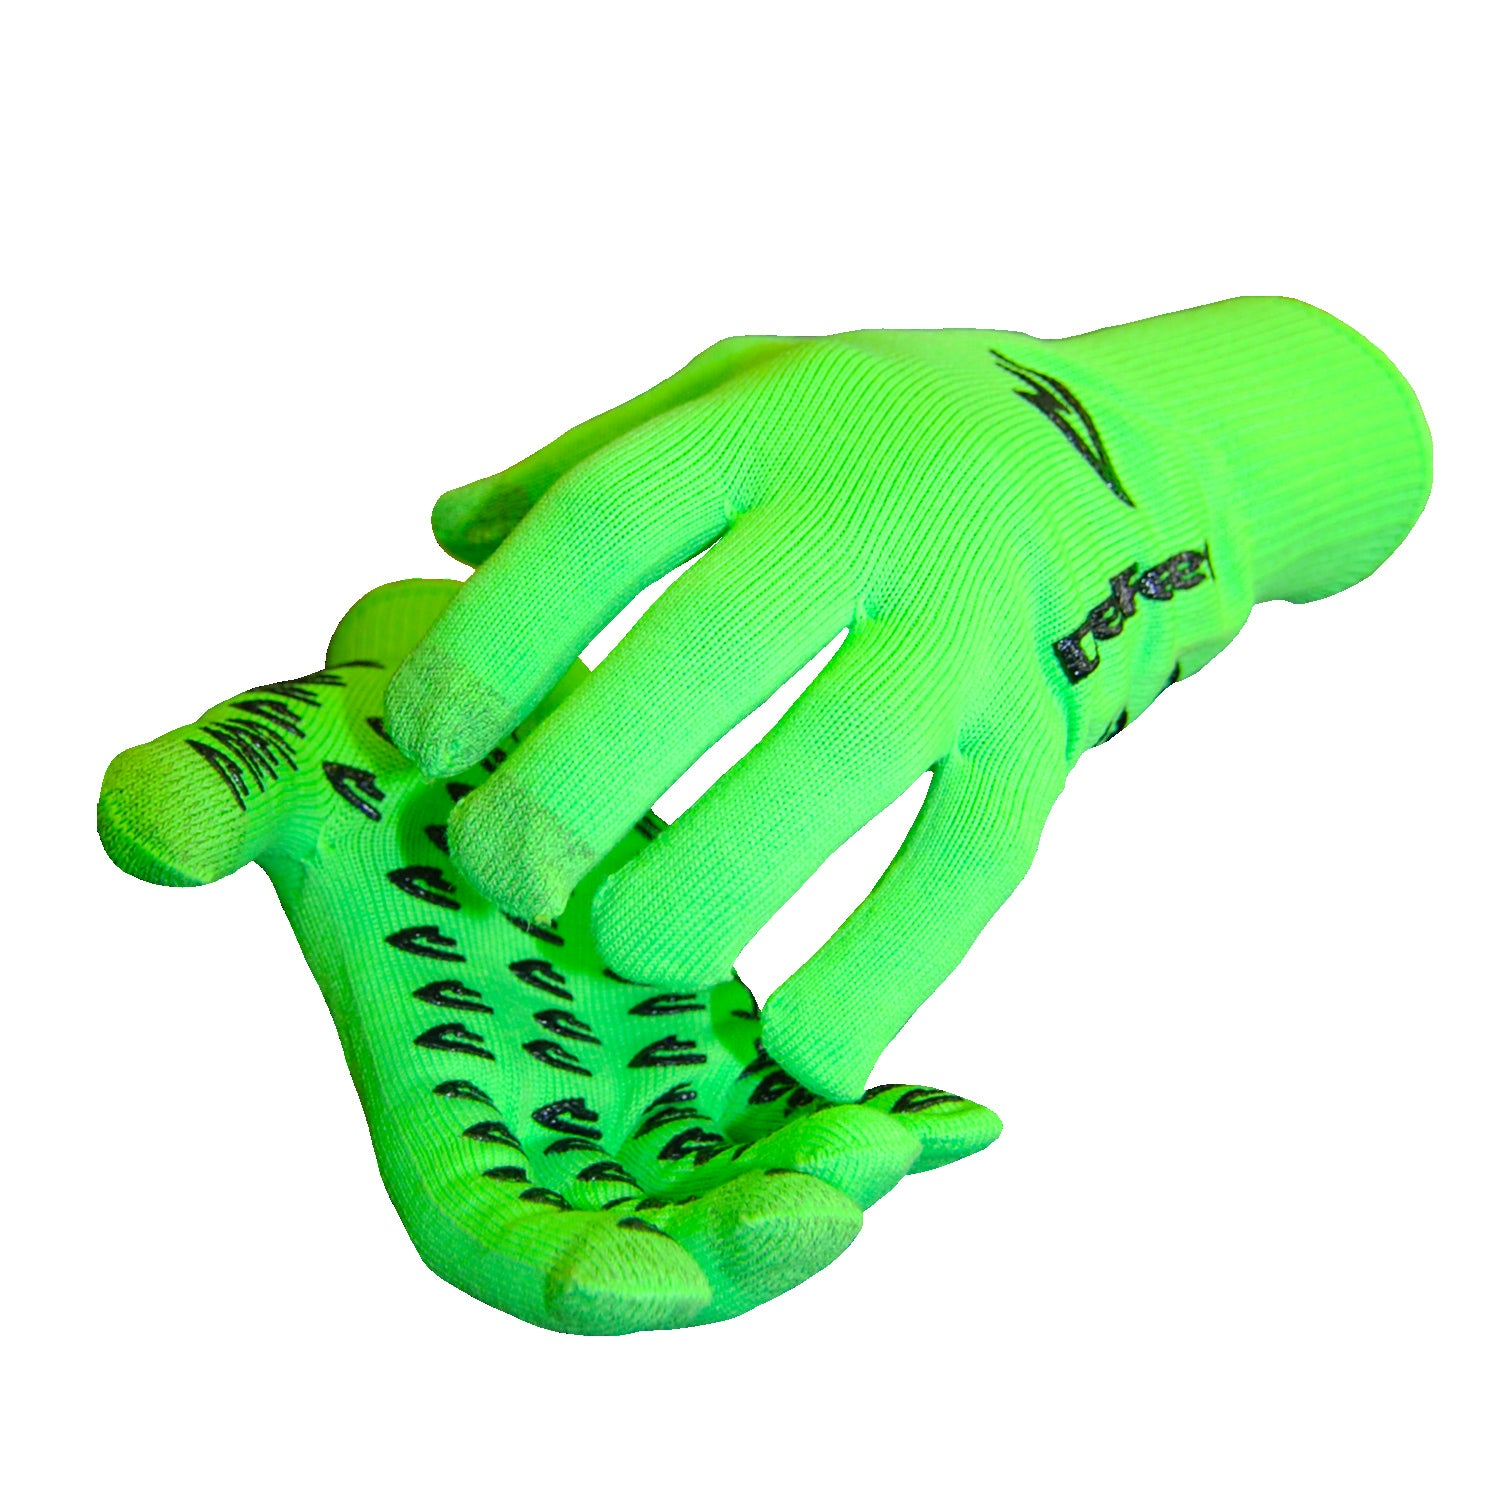 Duraglove ET Hi-Vis Green w/Black Grippies